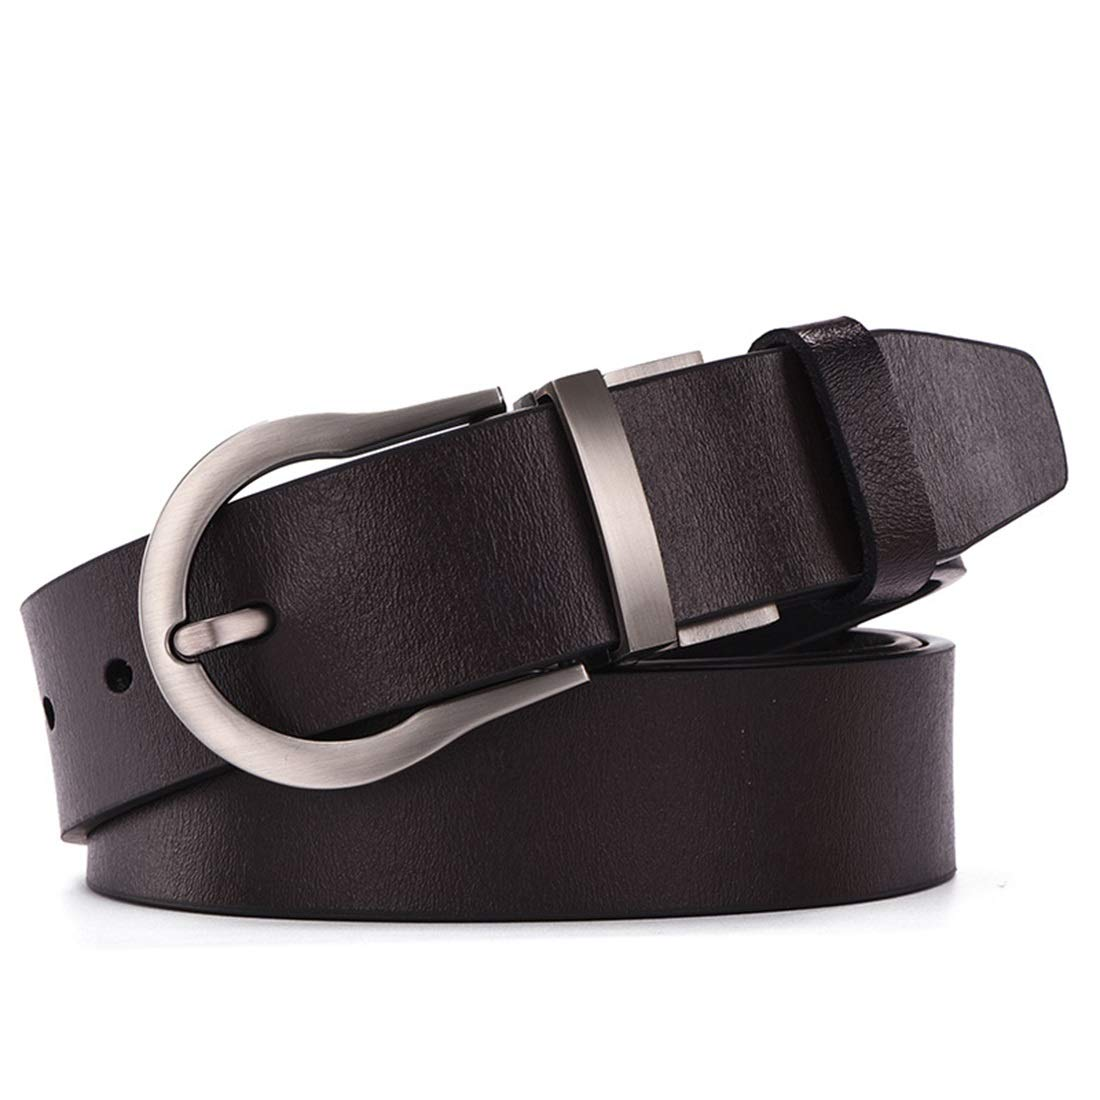 Reversible with Single Prong redated Buckle Gift Box Men's Genuine Leather Dress Belt Belts (color   Black)